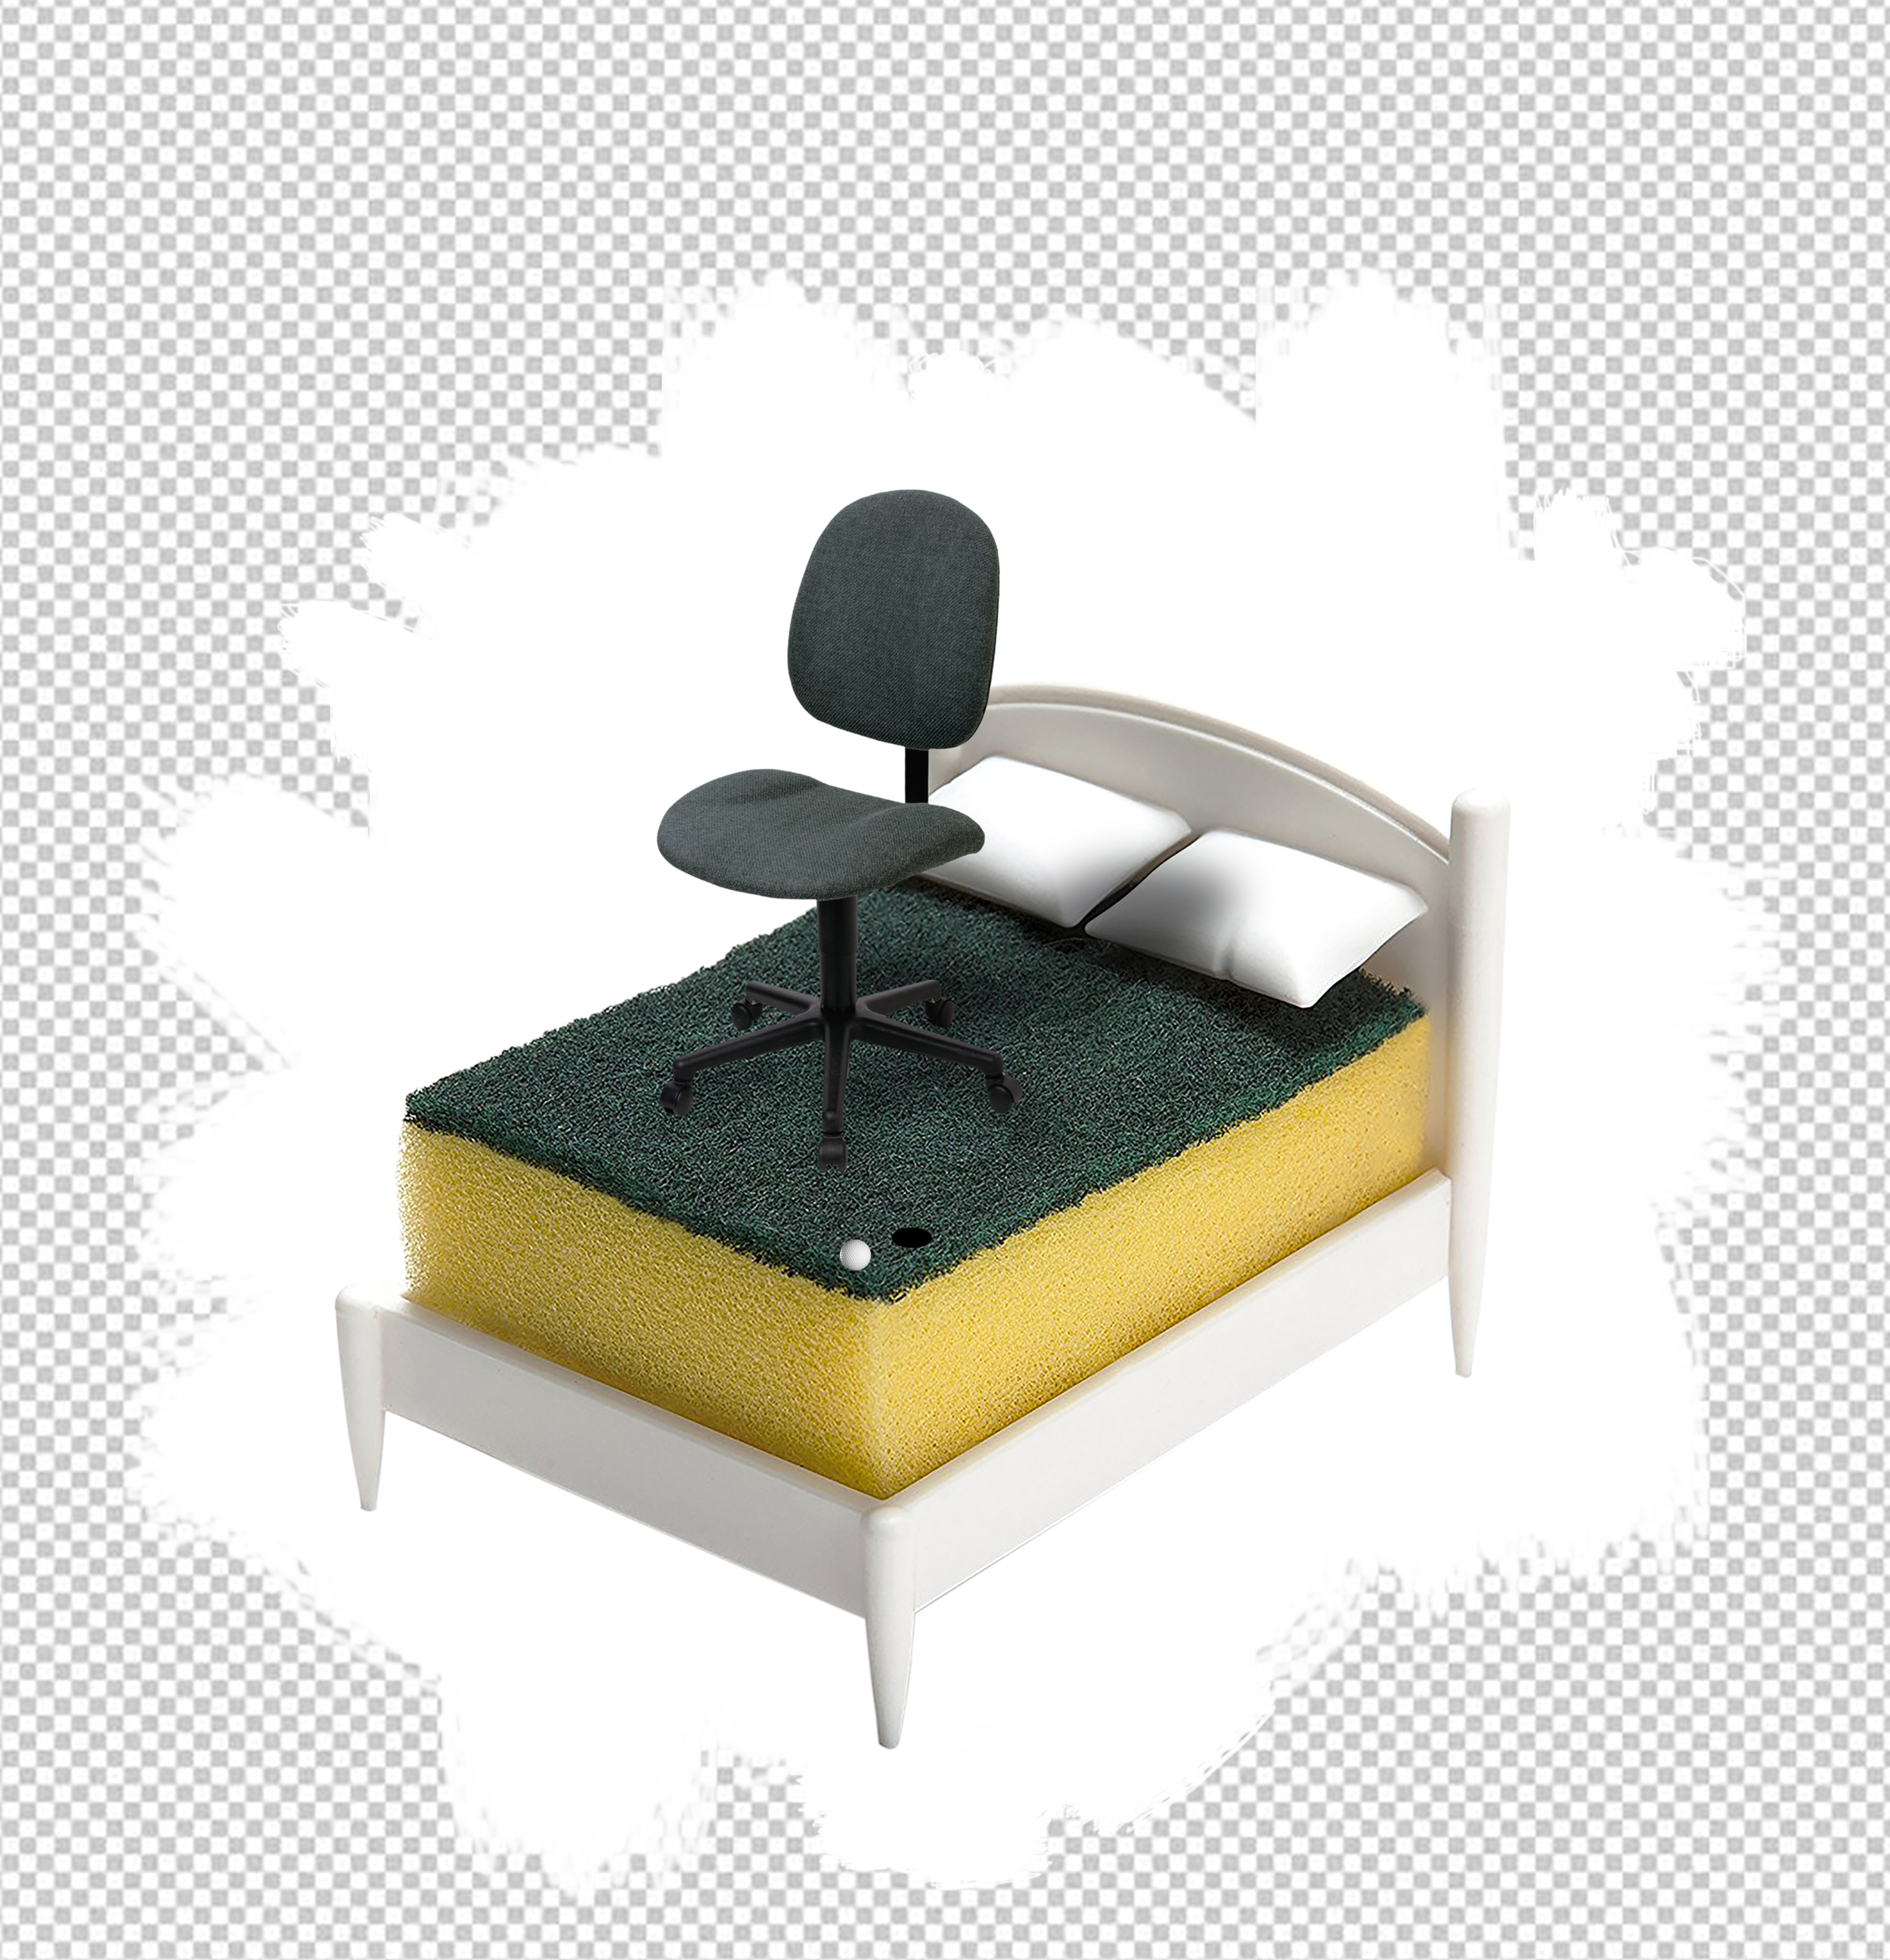 10_Sponge with chair.png